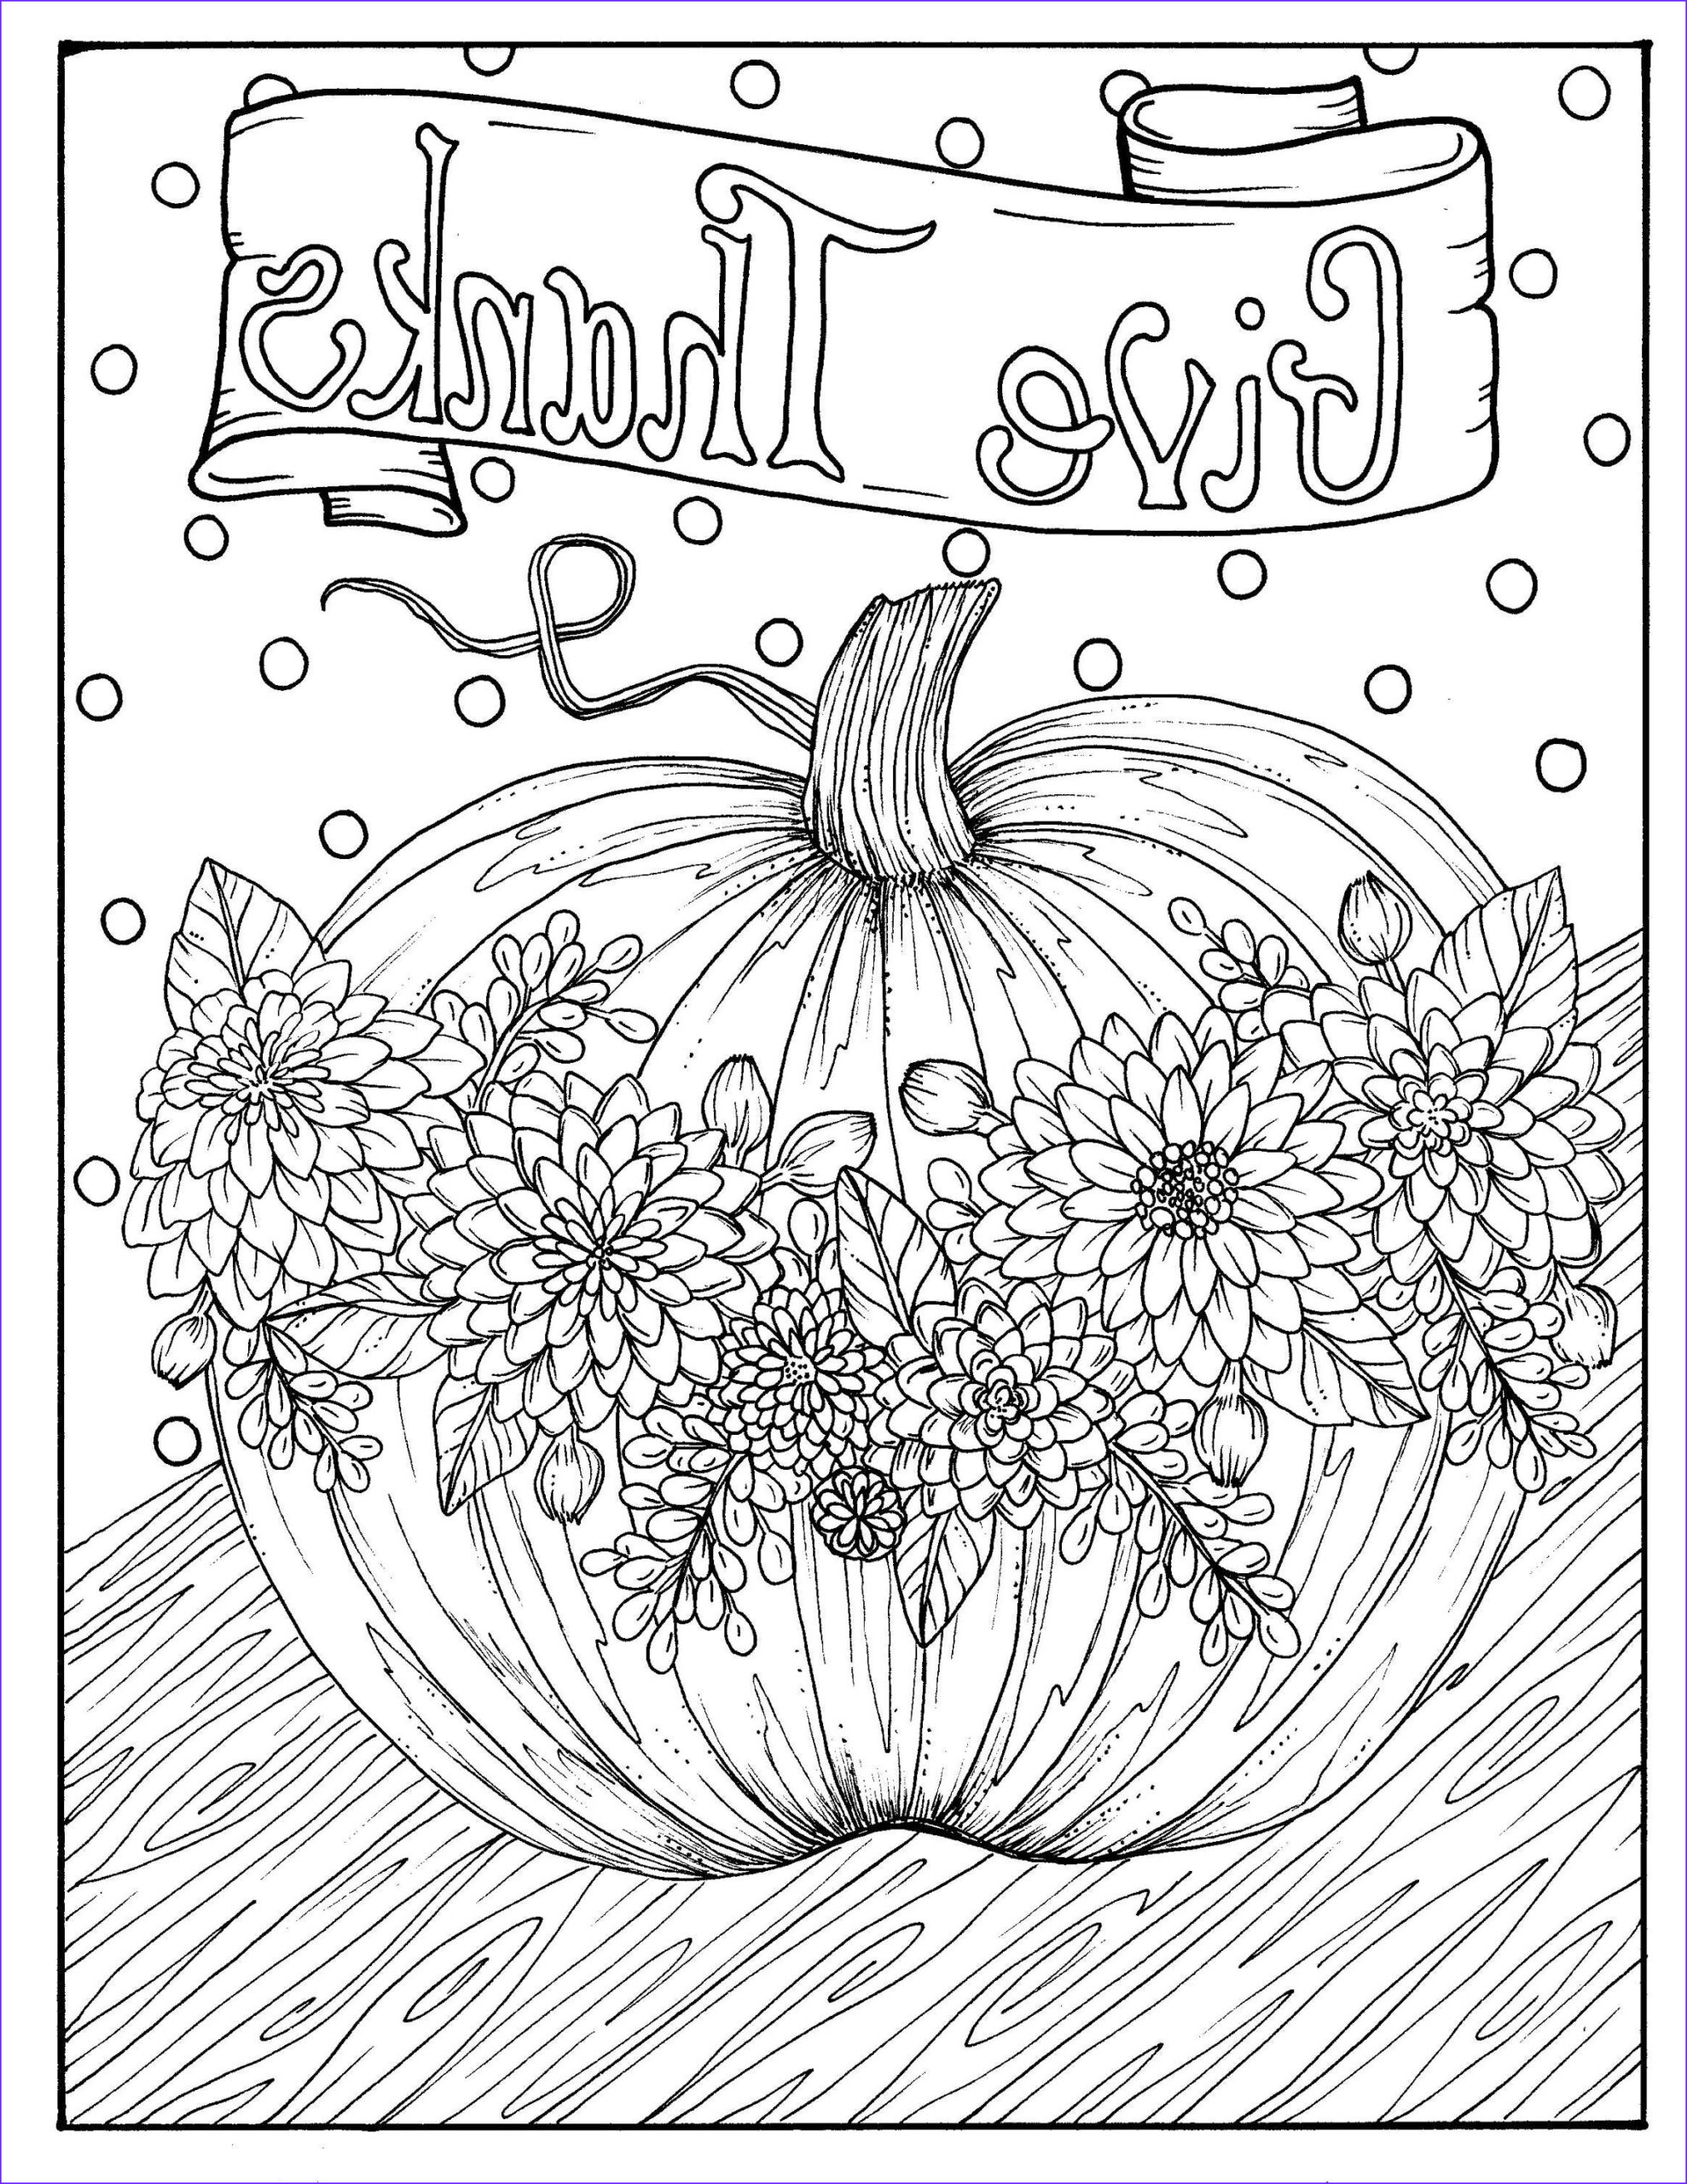 Harvest Coloring Pages Elegant Photos Give Thanks Digital Coloring Page Thanksgiving Harvest